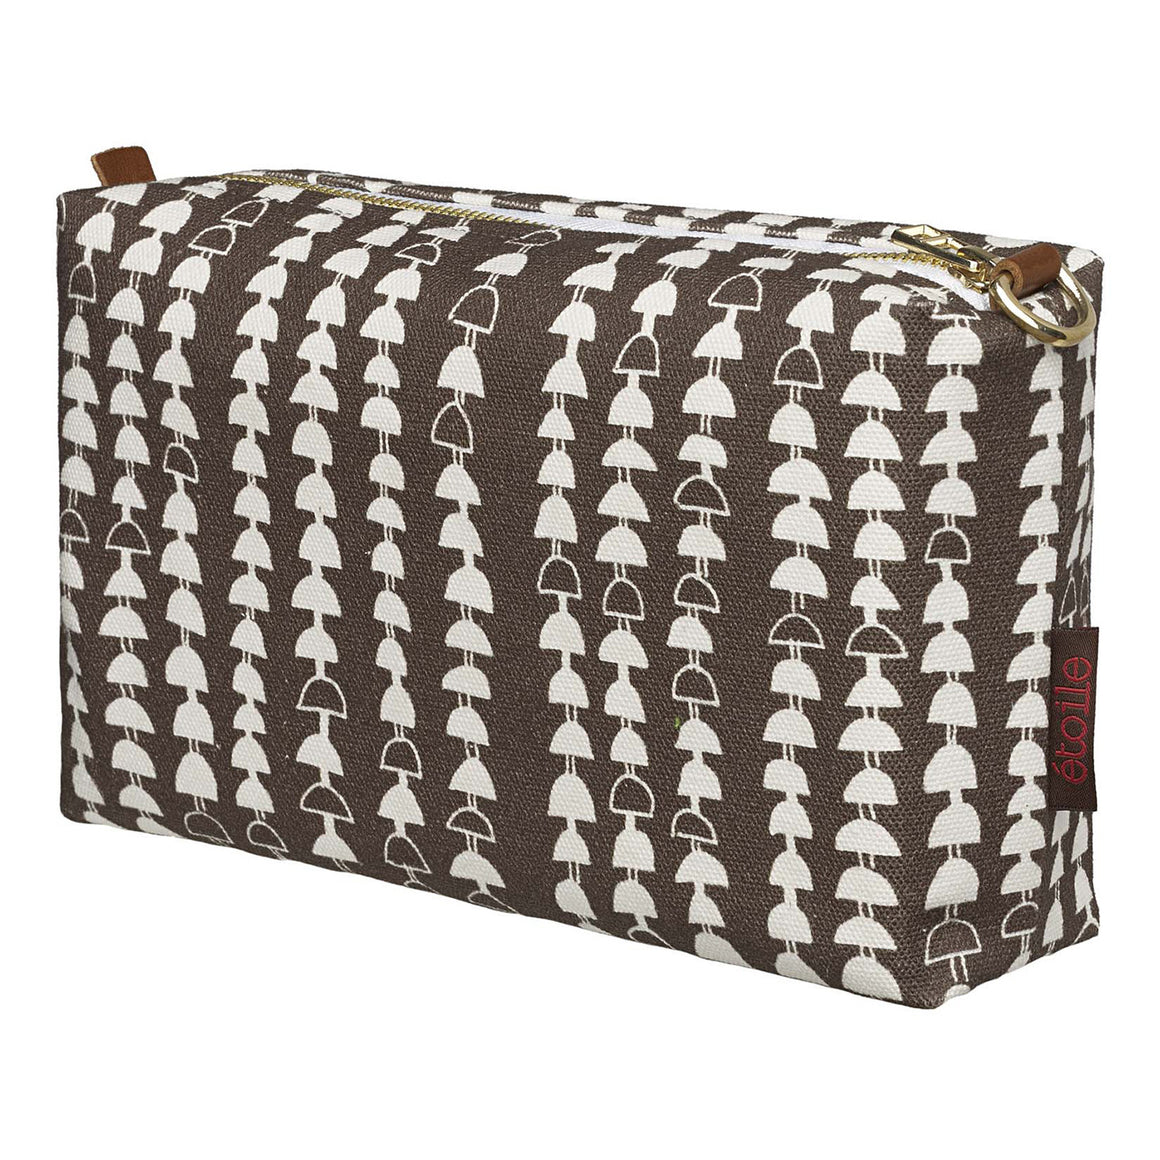 Hopi Graphic Pattern Canvas Toiletry or Wash Travel Bag in Stone Grey Perfect for all your cosmetics, beauty or shaving kit while travelling Ships from Canada (USA)